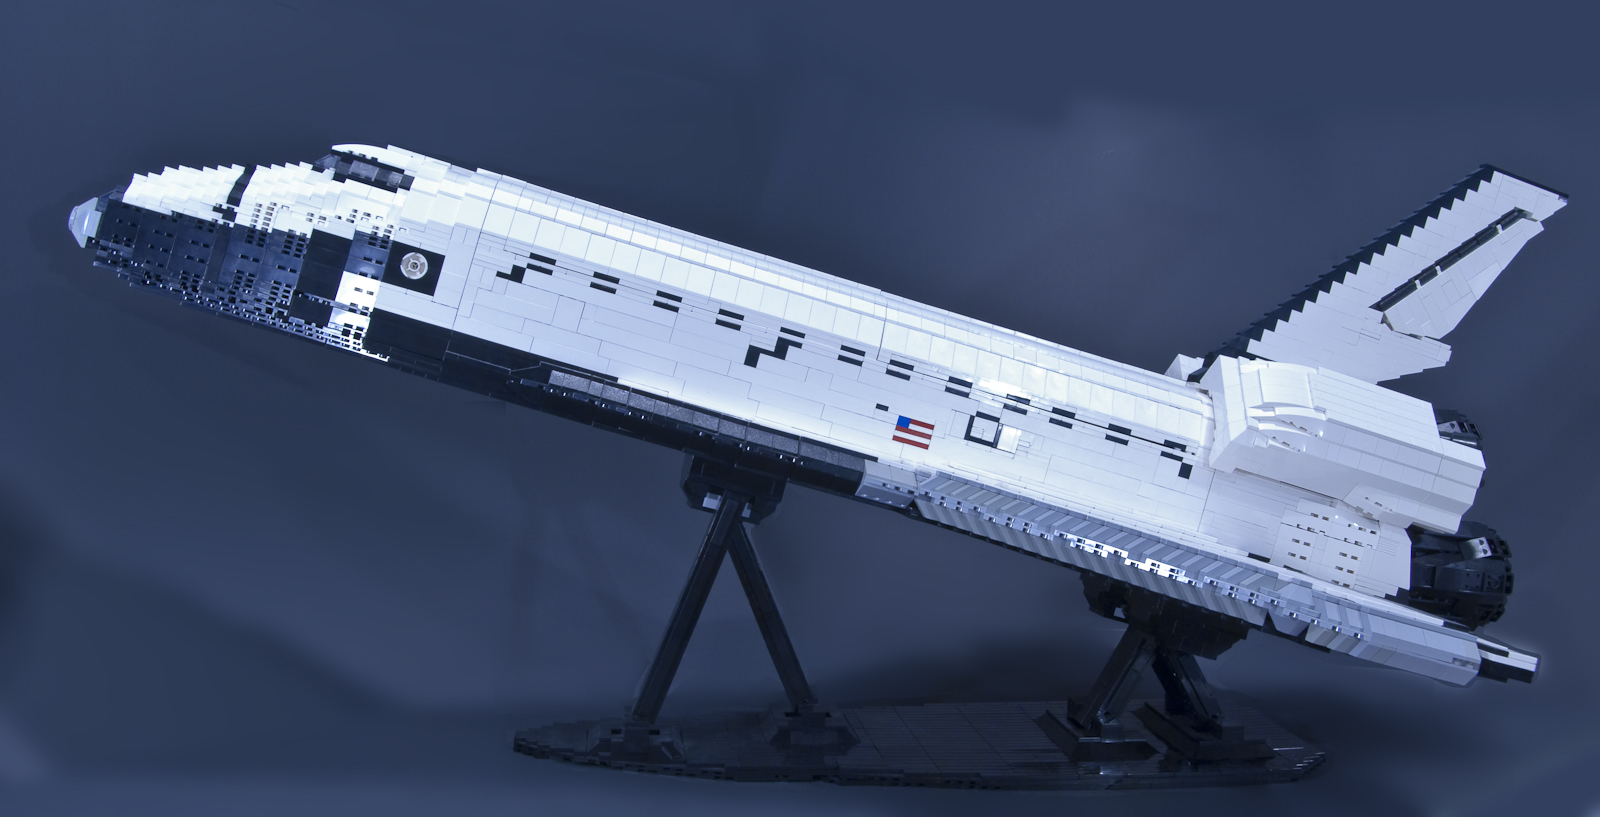 lego space shuttle large - photo #17